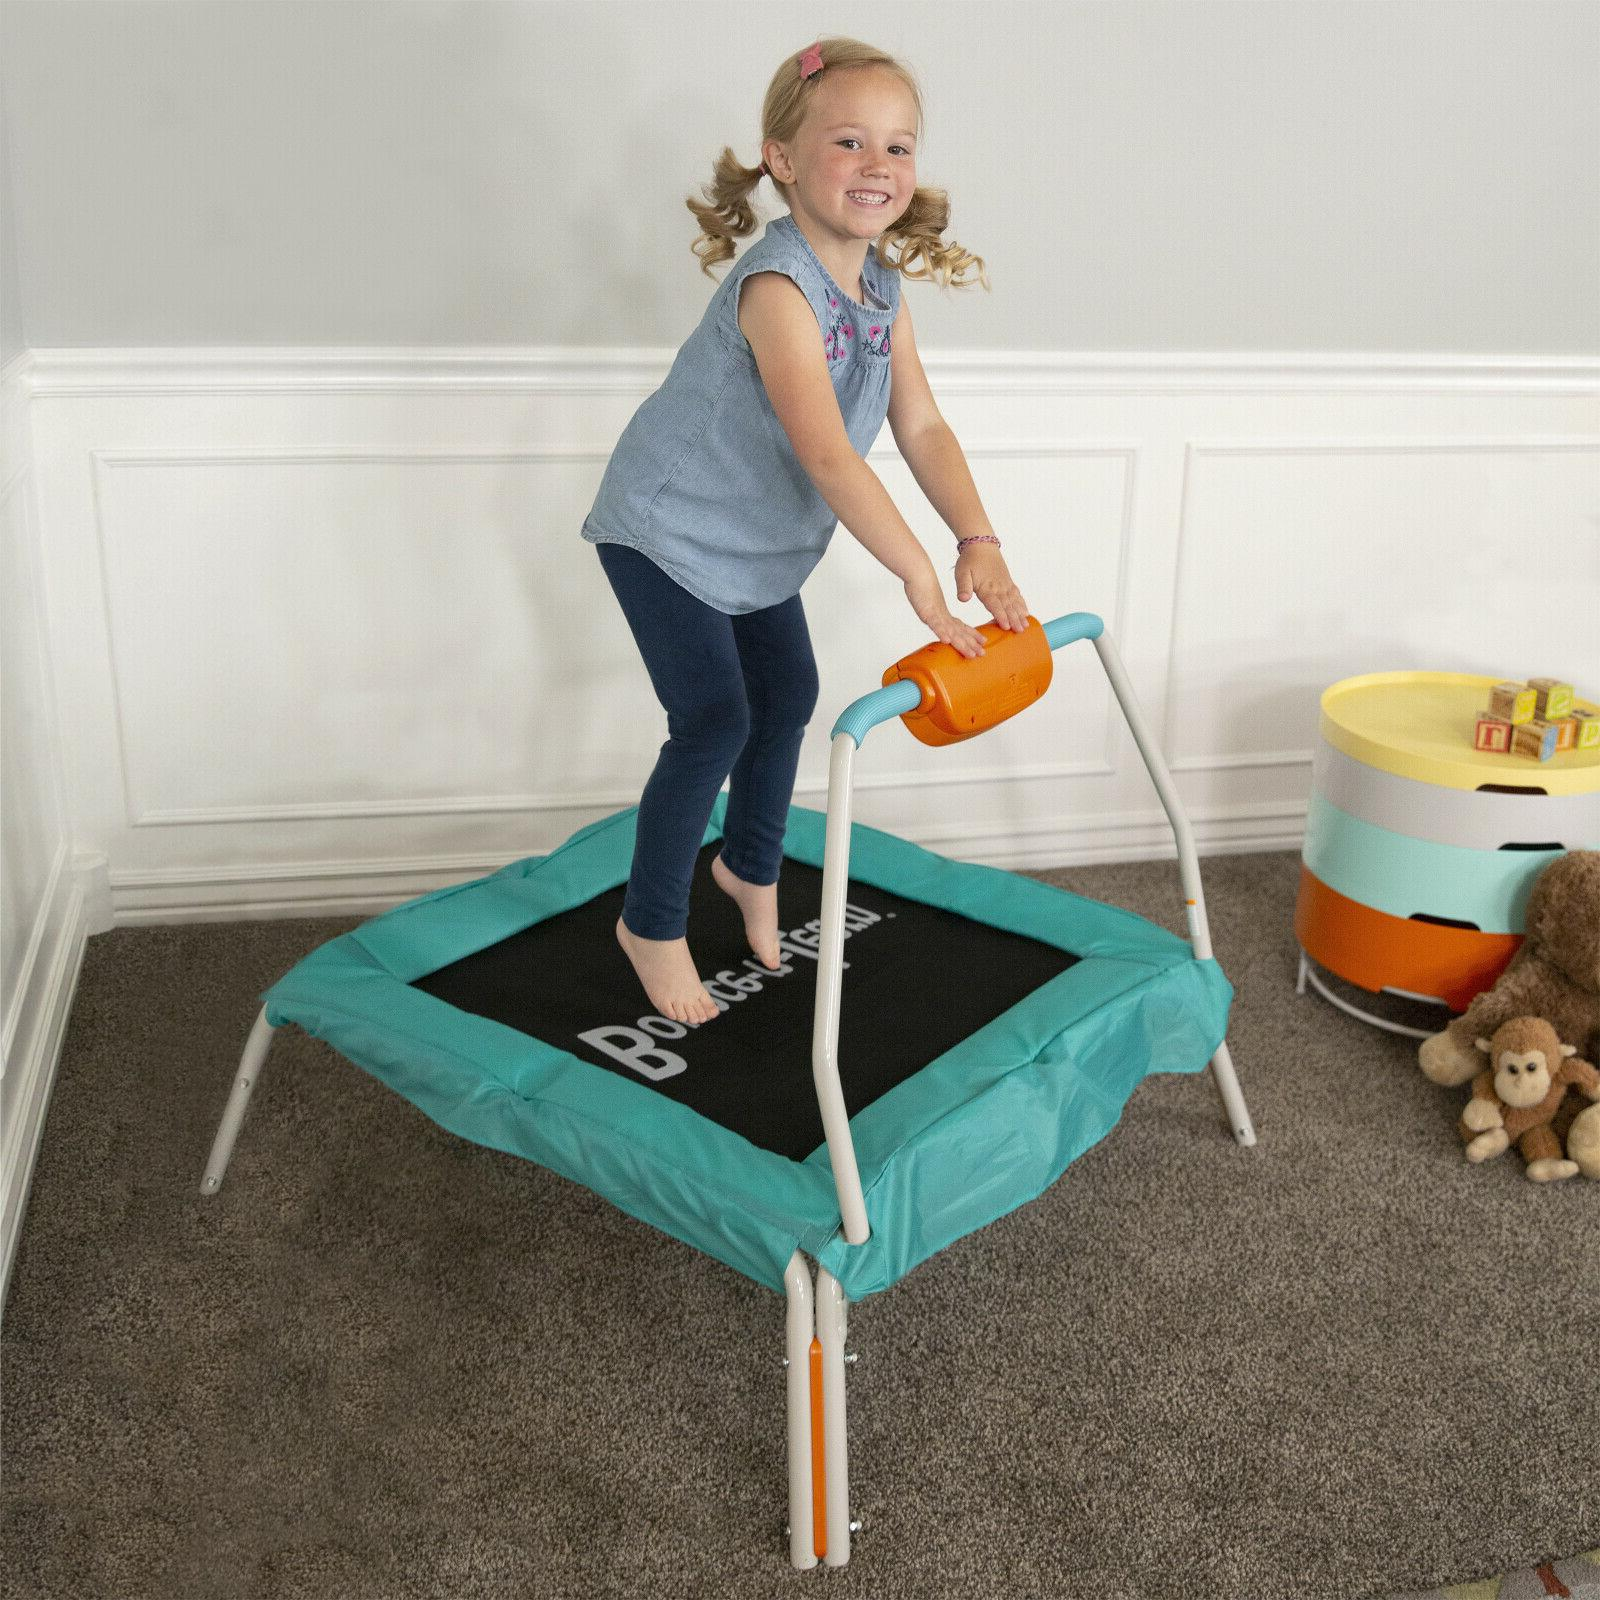 Skywalker Trampolines 36-Inch Square Language Learning Mini Fun